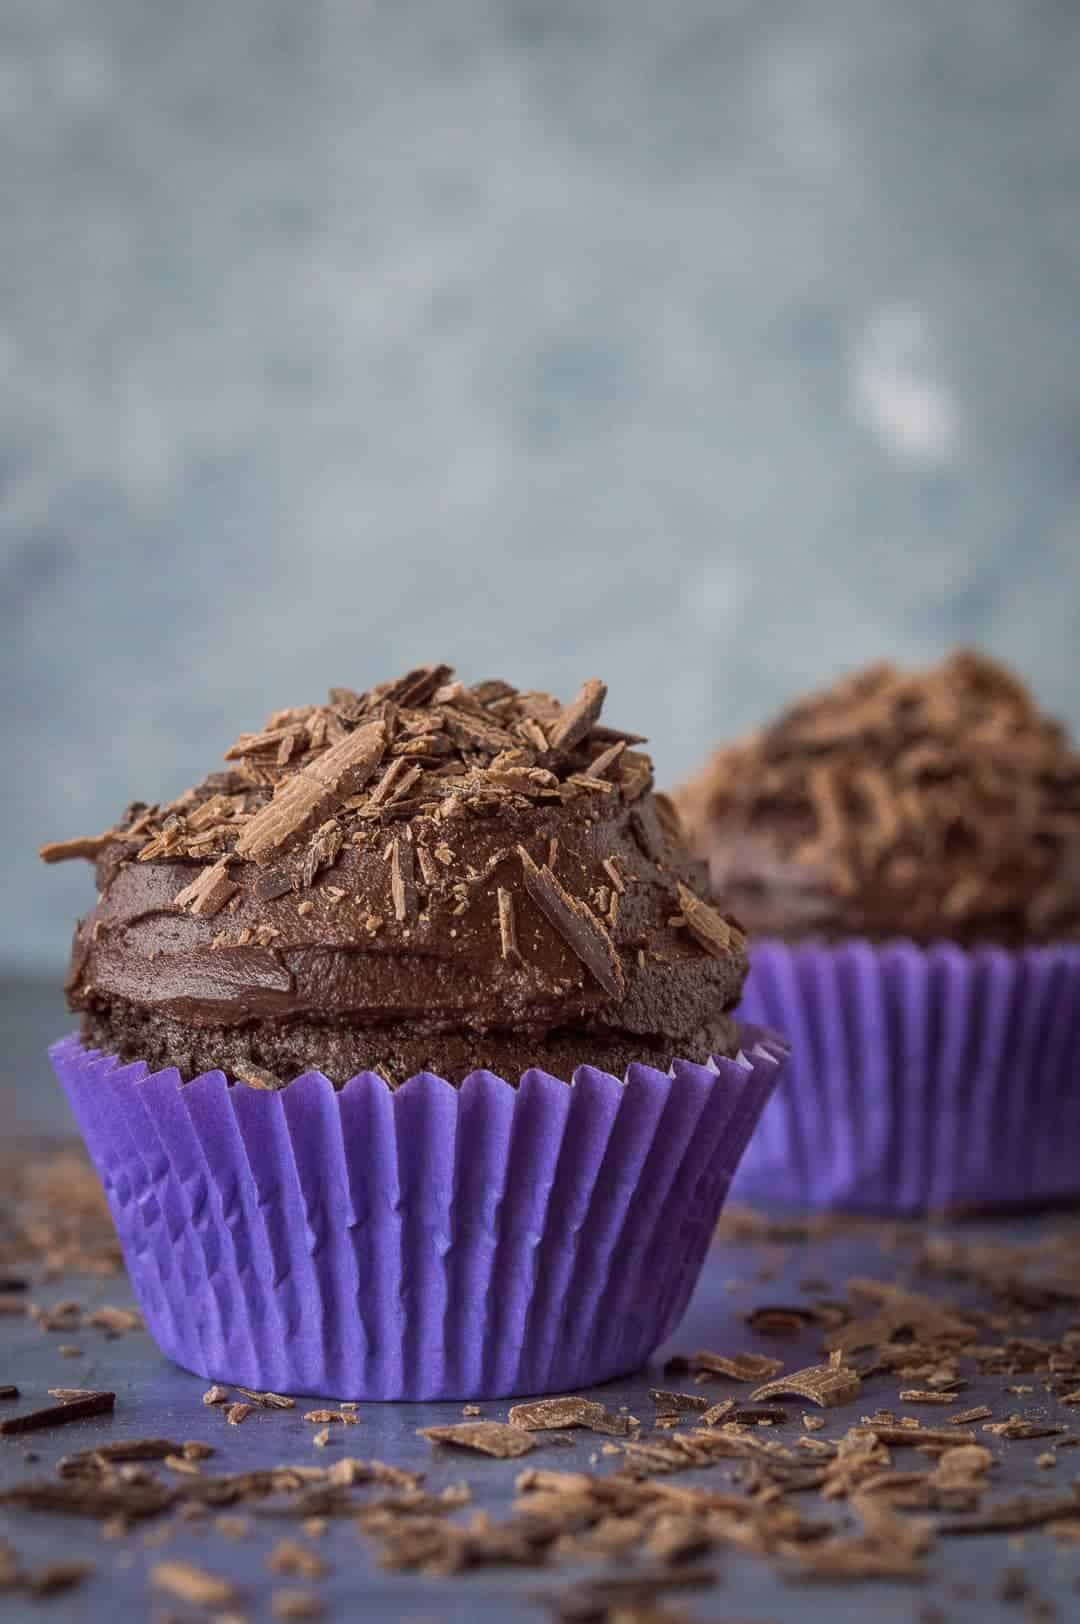 Two vegan chocolate cupcakes in purple cake cases.